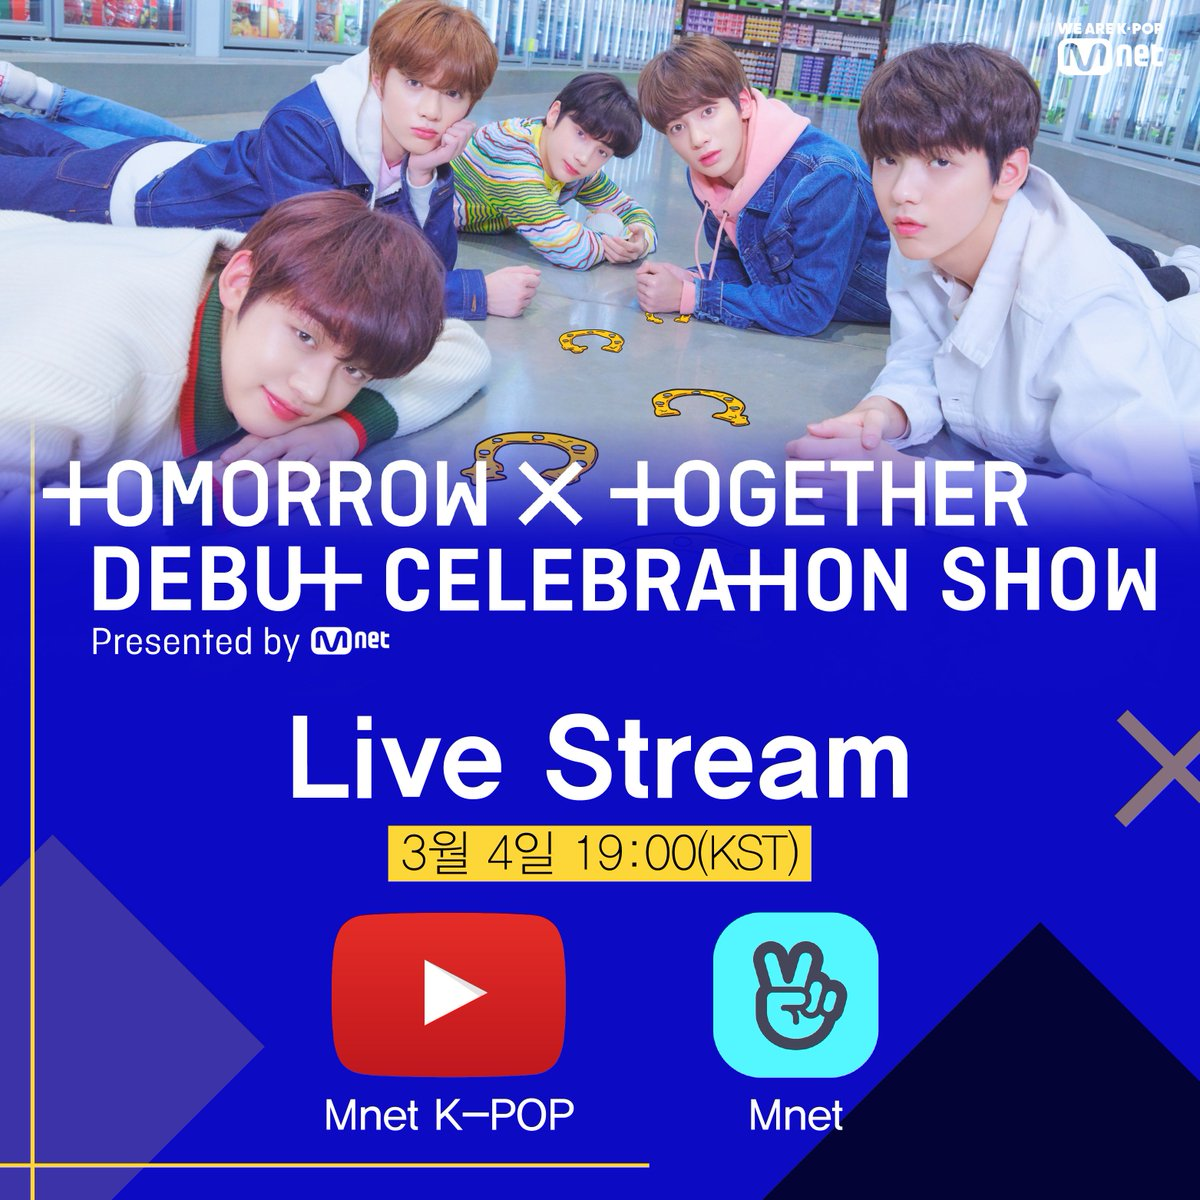 818009047bf3c   TOMORROW X TOGETHER Debut Celebration Show Presented by Mnet  LIVE STREAM  INFORMATION Youtube  Mnet